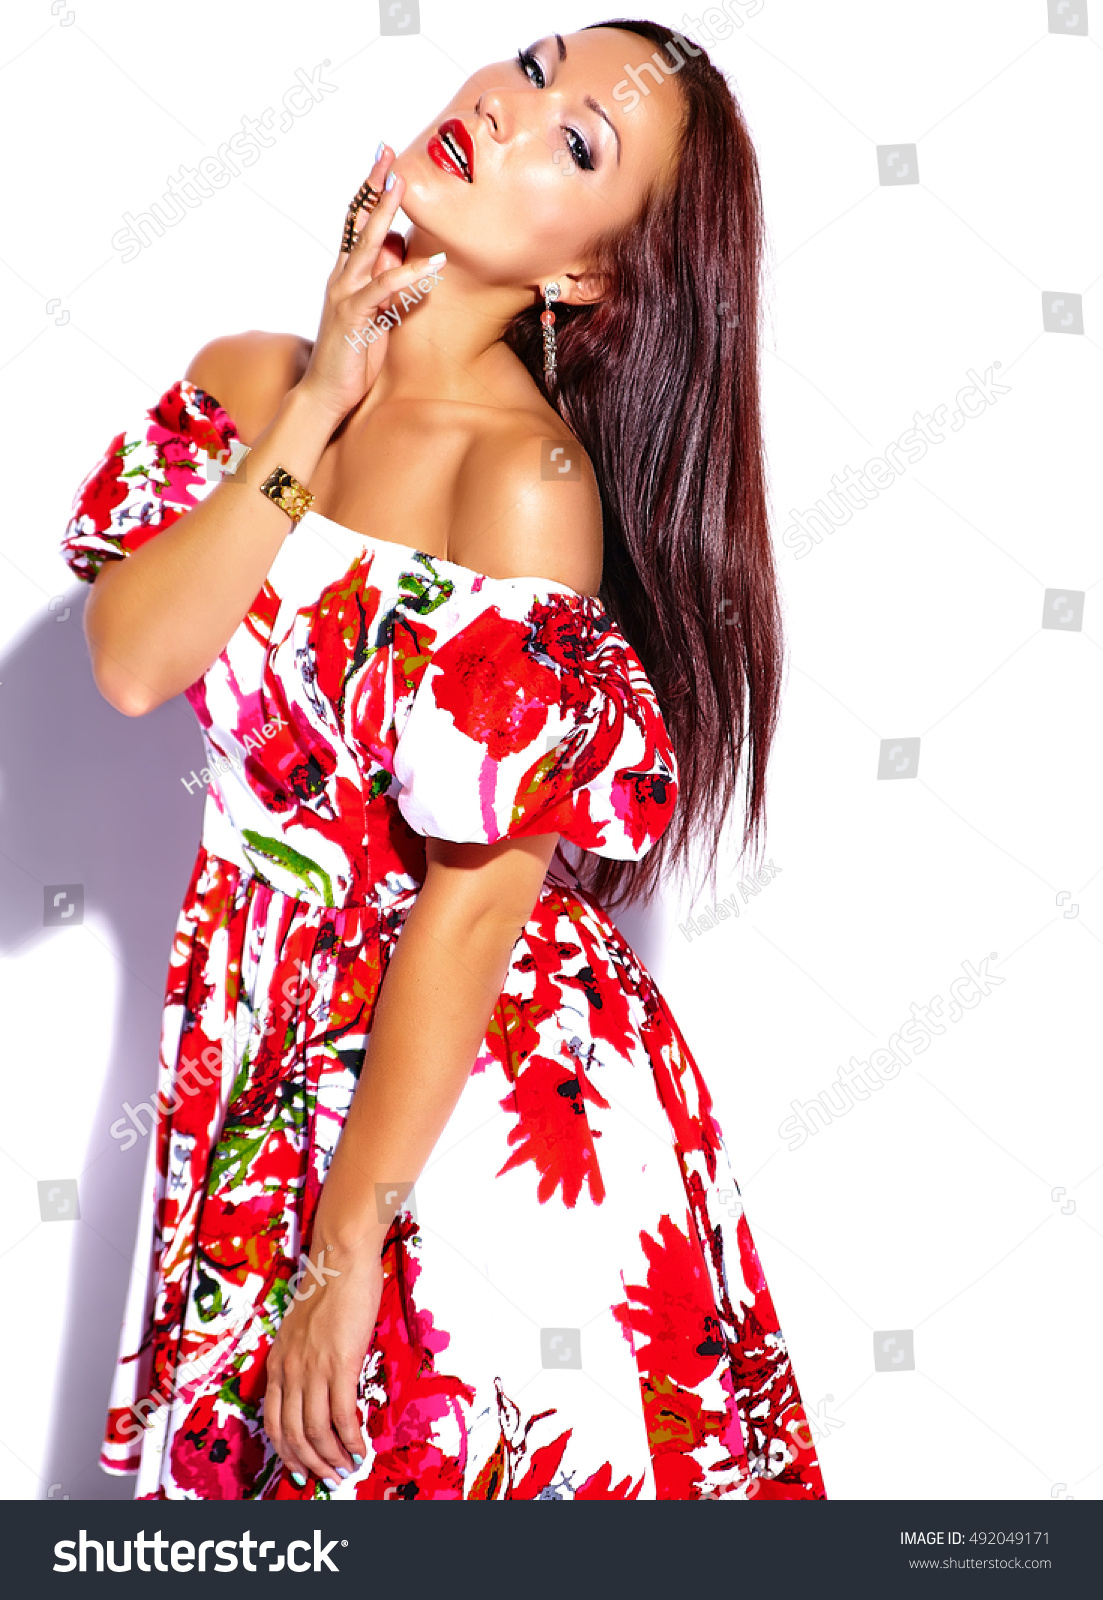 68d8ff4cfad portrait of beautiful funny sexy brunette woman girl in colorful bright  summer red dress isolated on